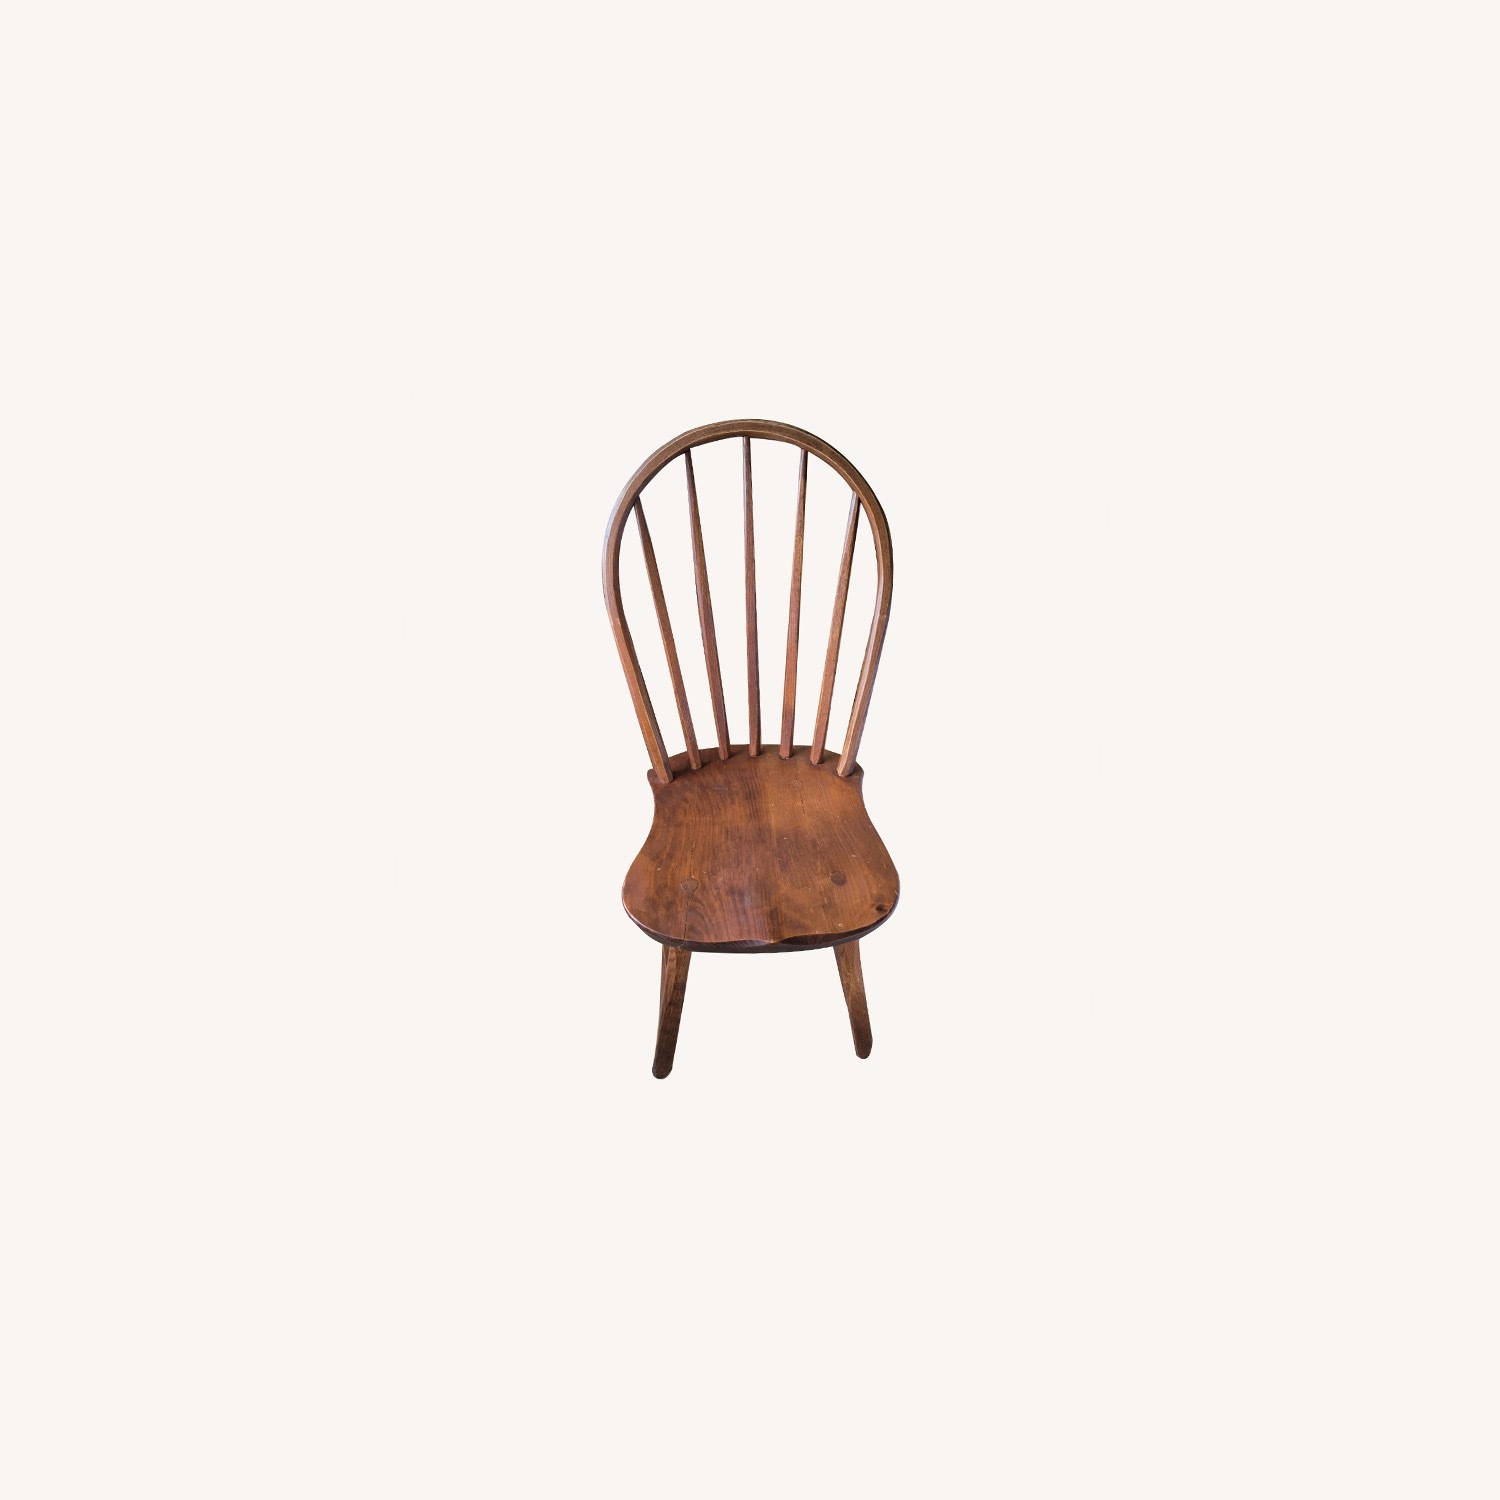 Curved Hunt Furniture Wood Chairs - image-0